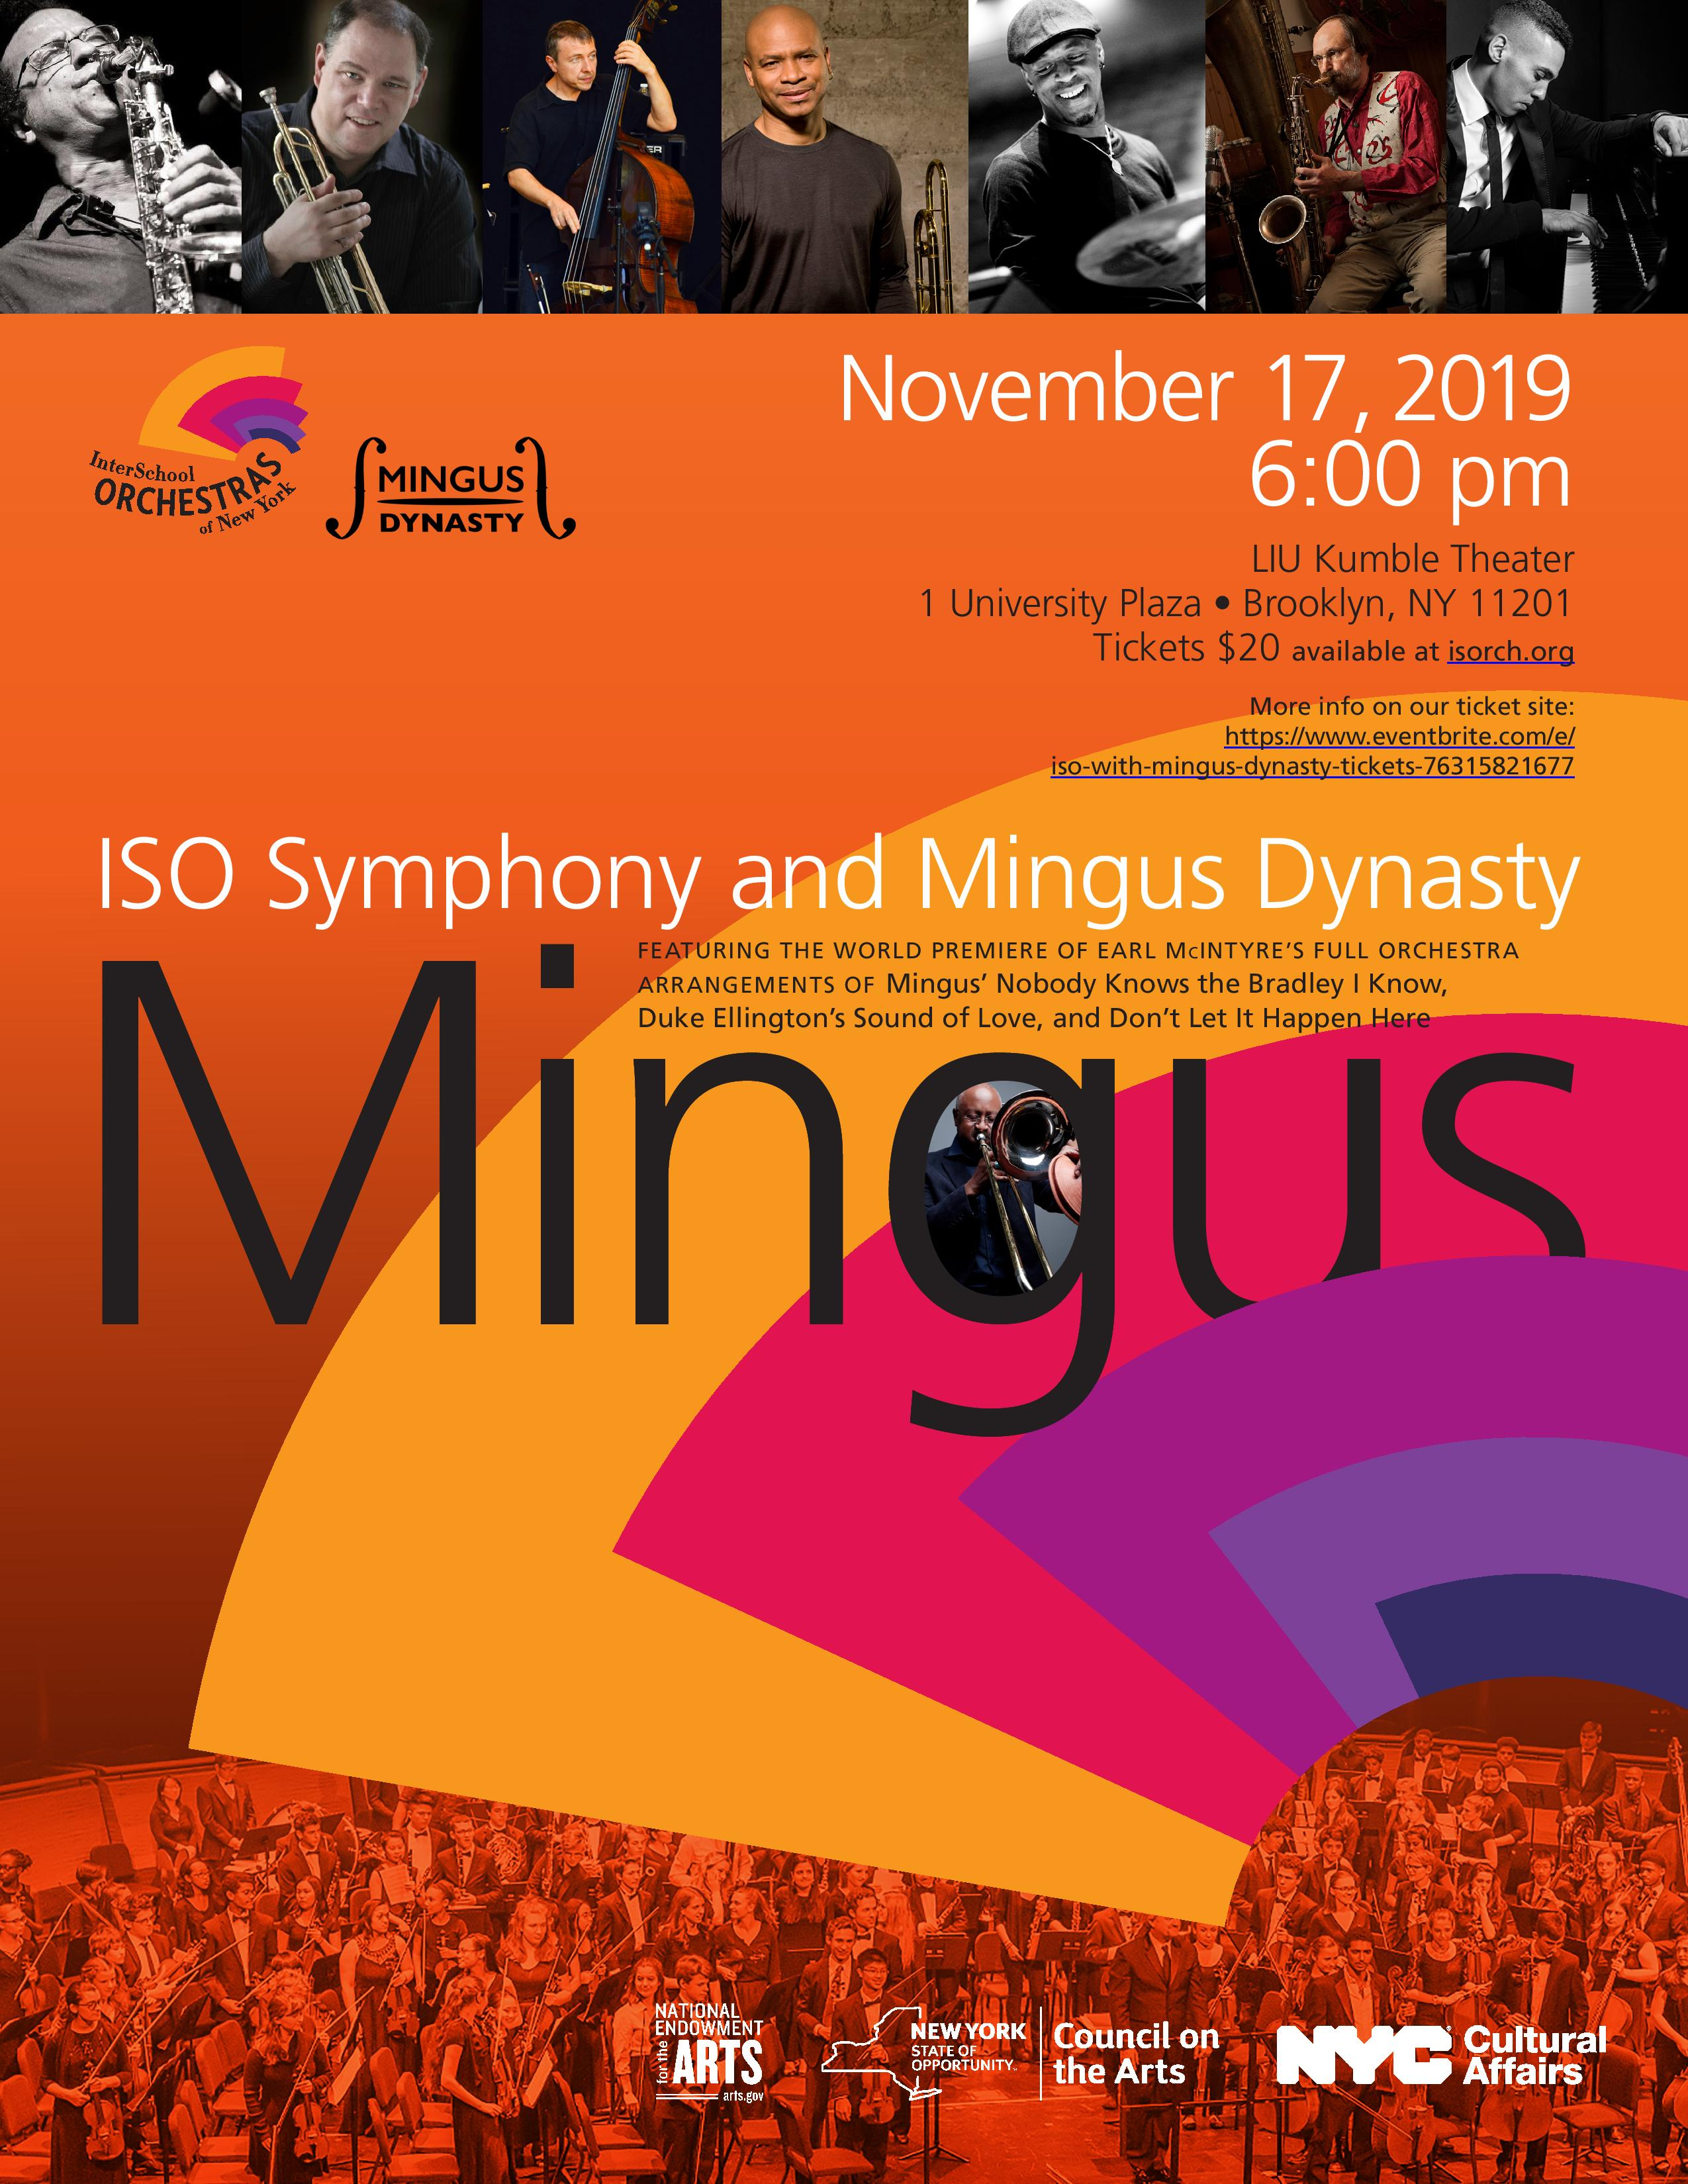 InterSchool Orchestras Of New York And Mingus Dynasty Present: Mingus